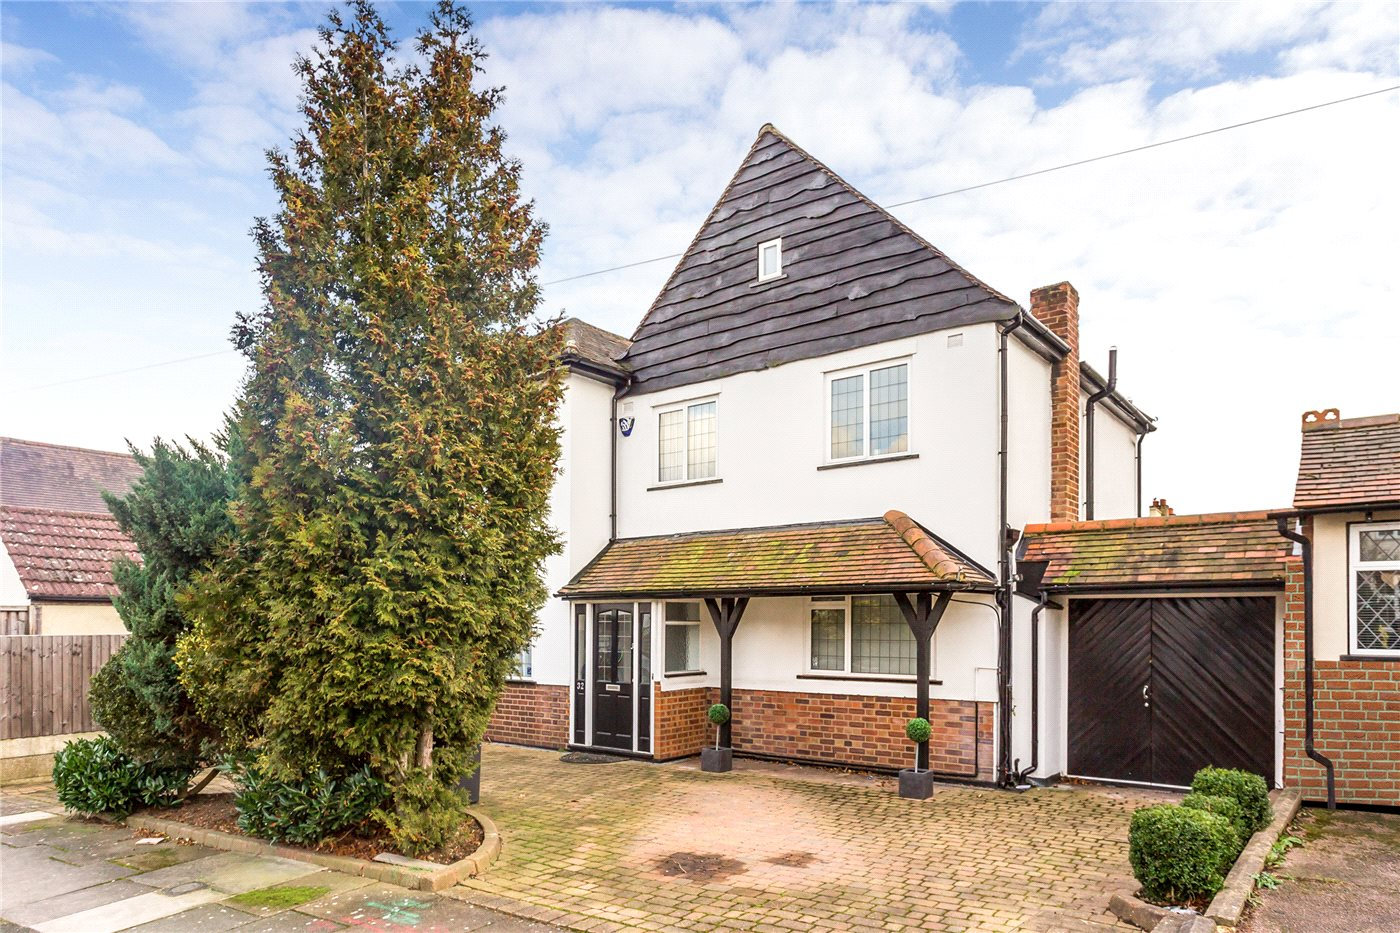 4 Bedrooms Detached House for sale in Cedar Park Road, Enfield, EN2